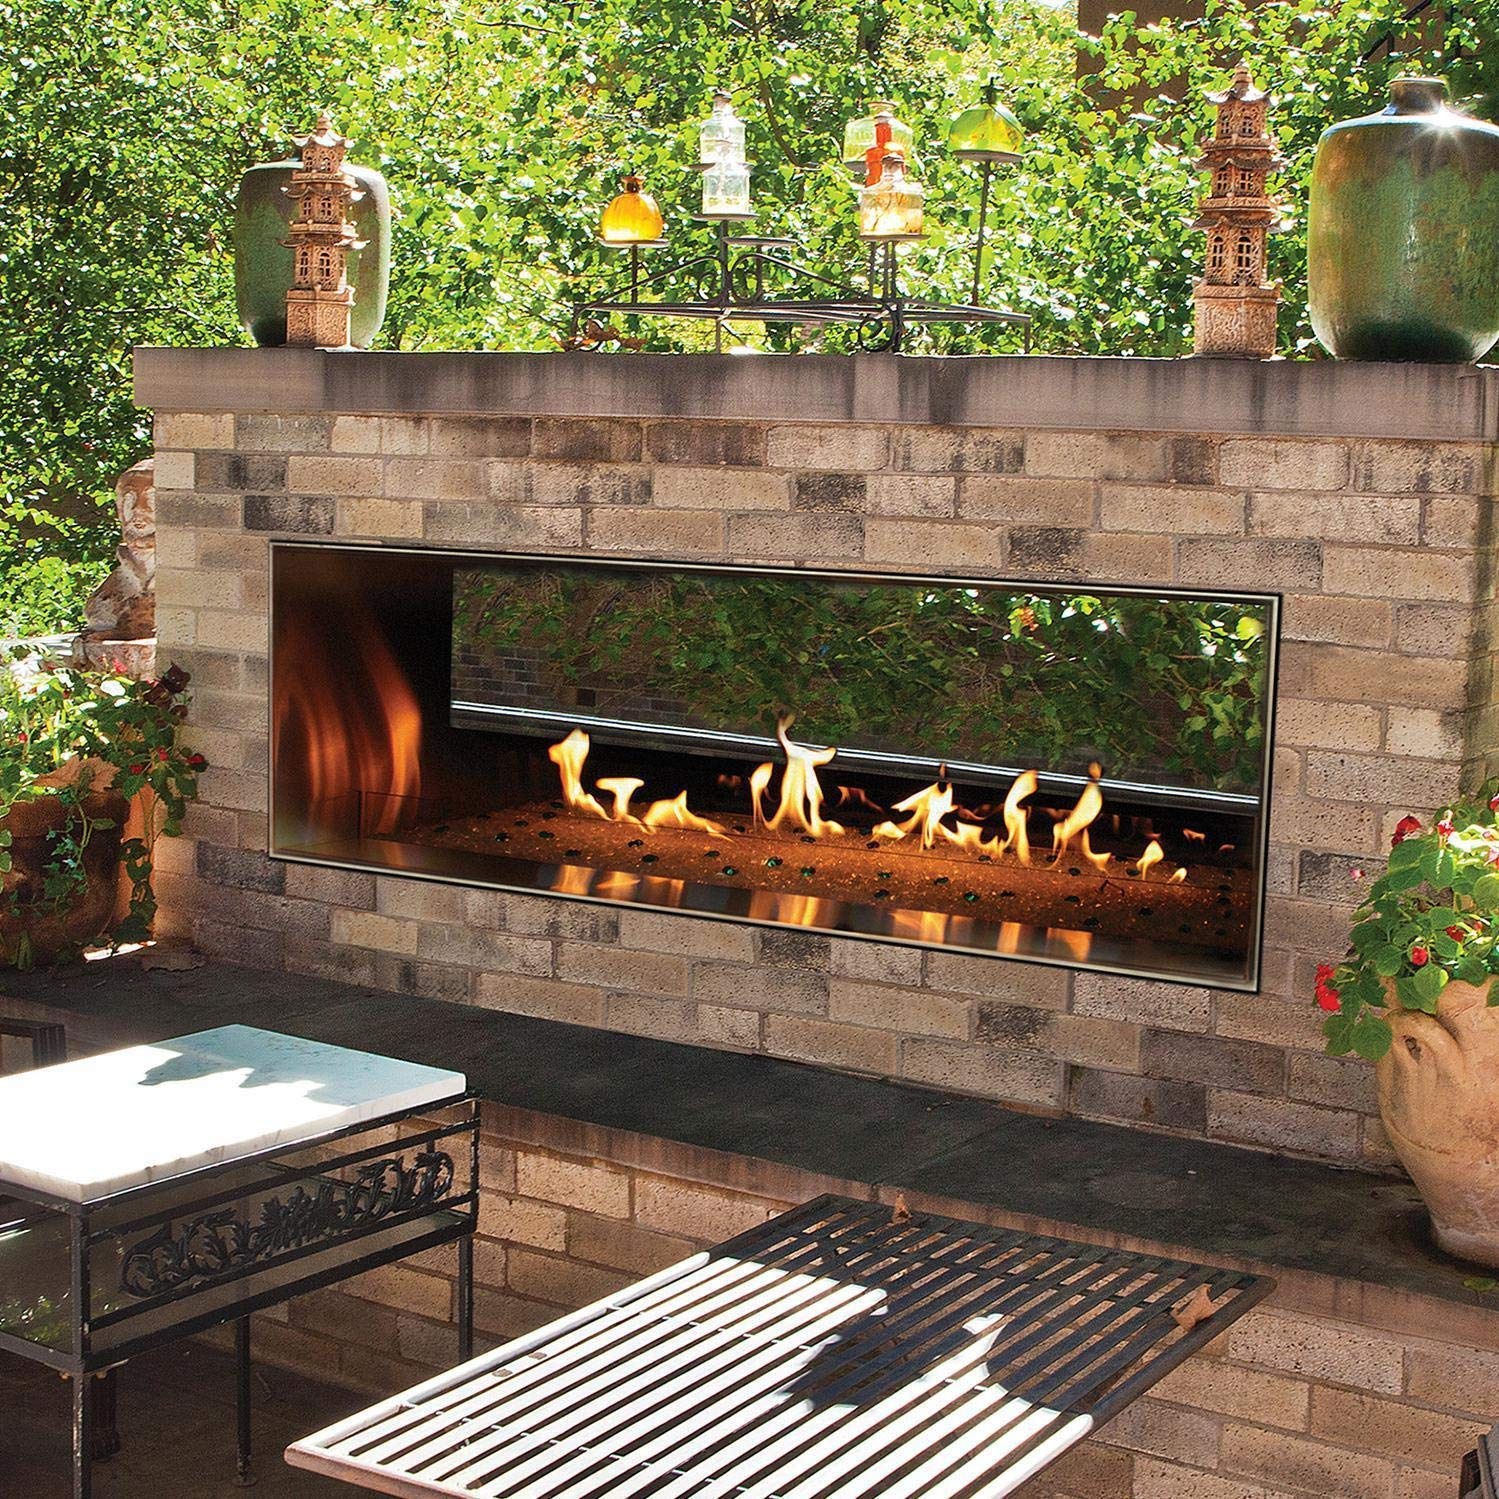 White Mountain Hearth by Empire Carol Rose 48-inch Vent Free Propane Gas Outdoor Linear See-Through Fireplace W/Manual Electronic Ignition & Led Light System - Oll48sp12sp by Empire Comfort Systems